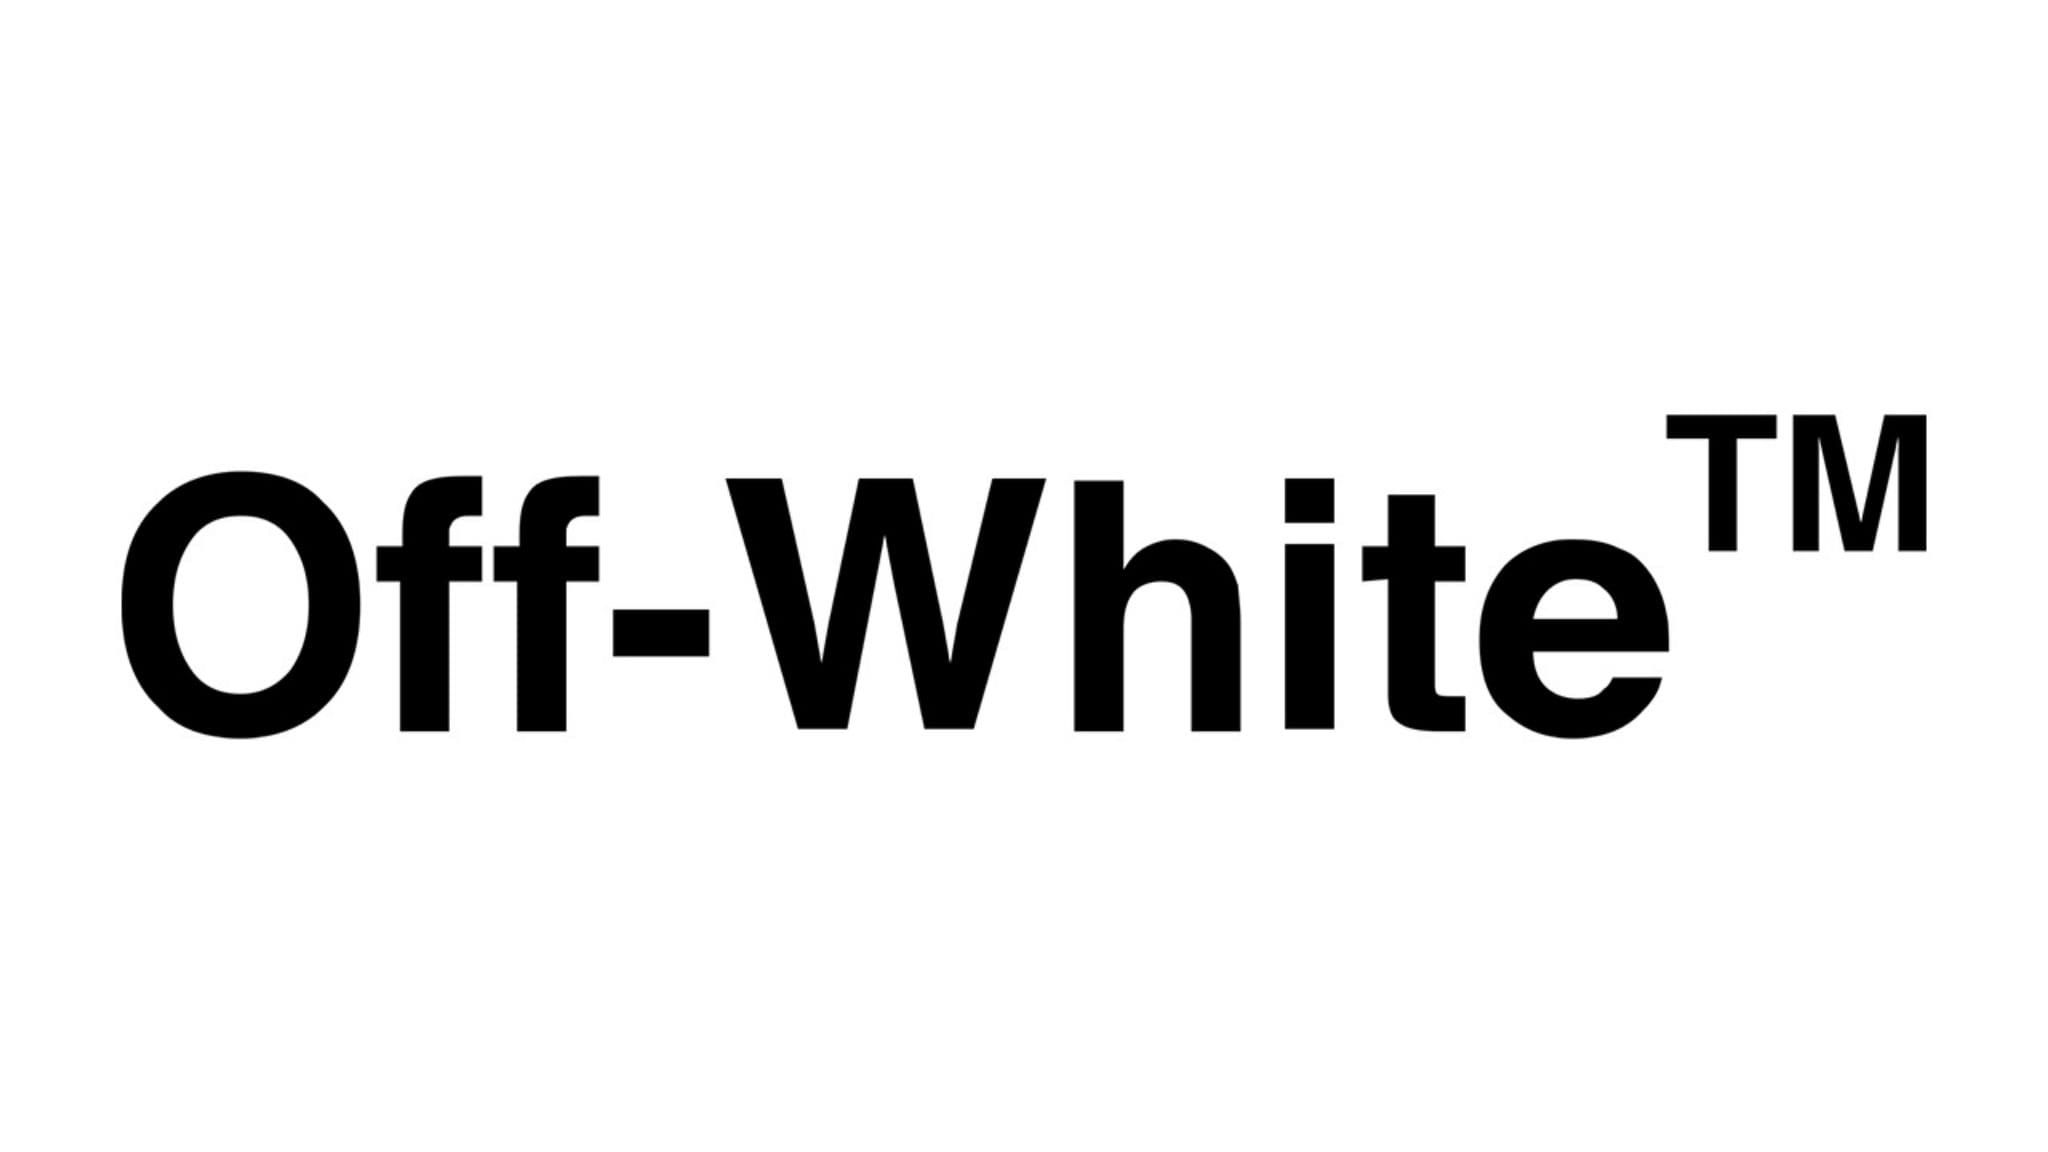 Designer Brands You Probably Didn T Know Existed Ellis James Designs Off White Black And White Aesthetic Branding Design